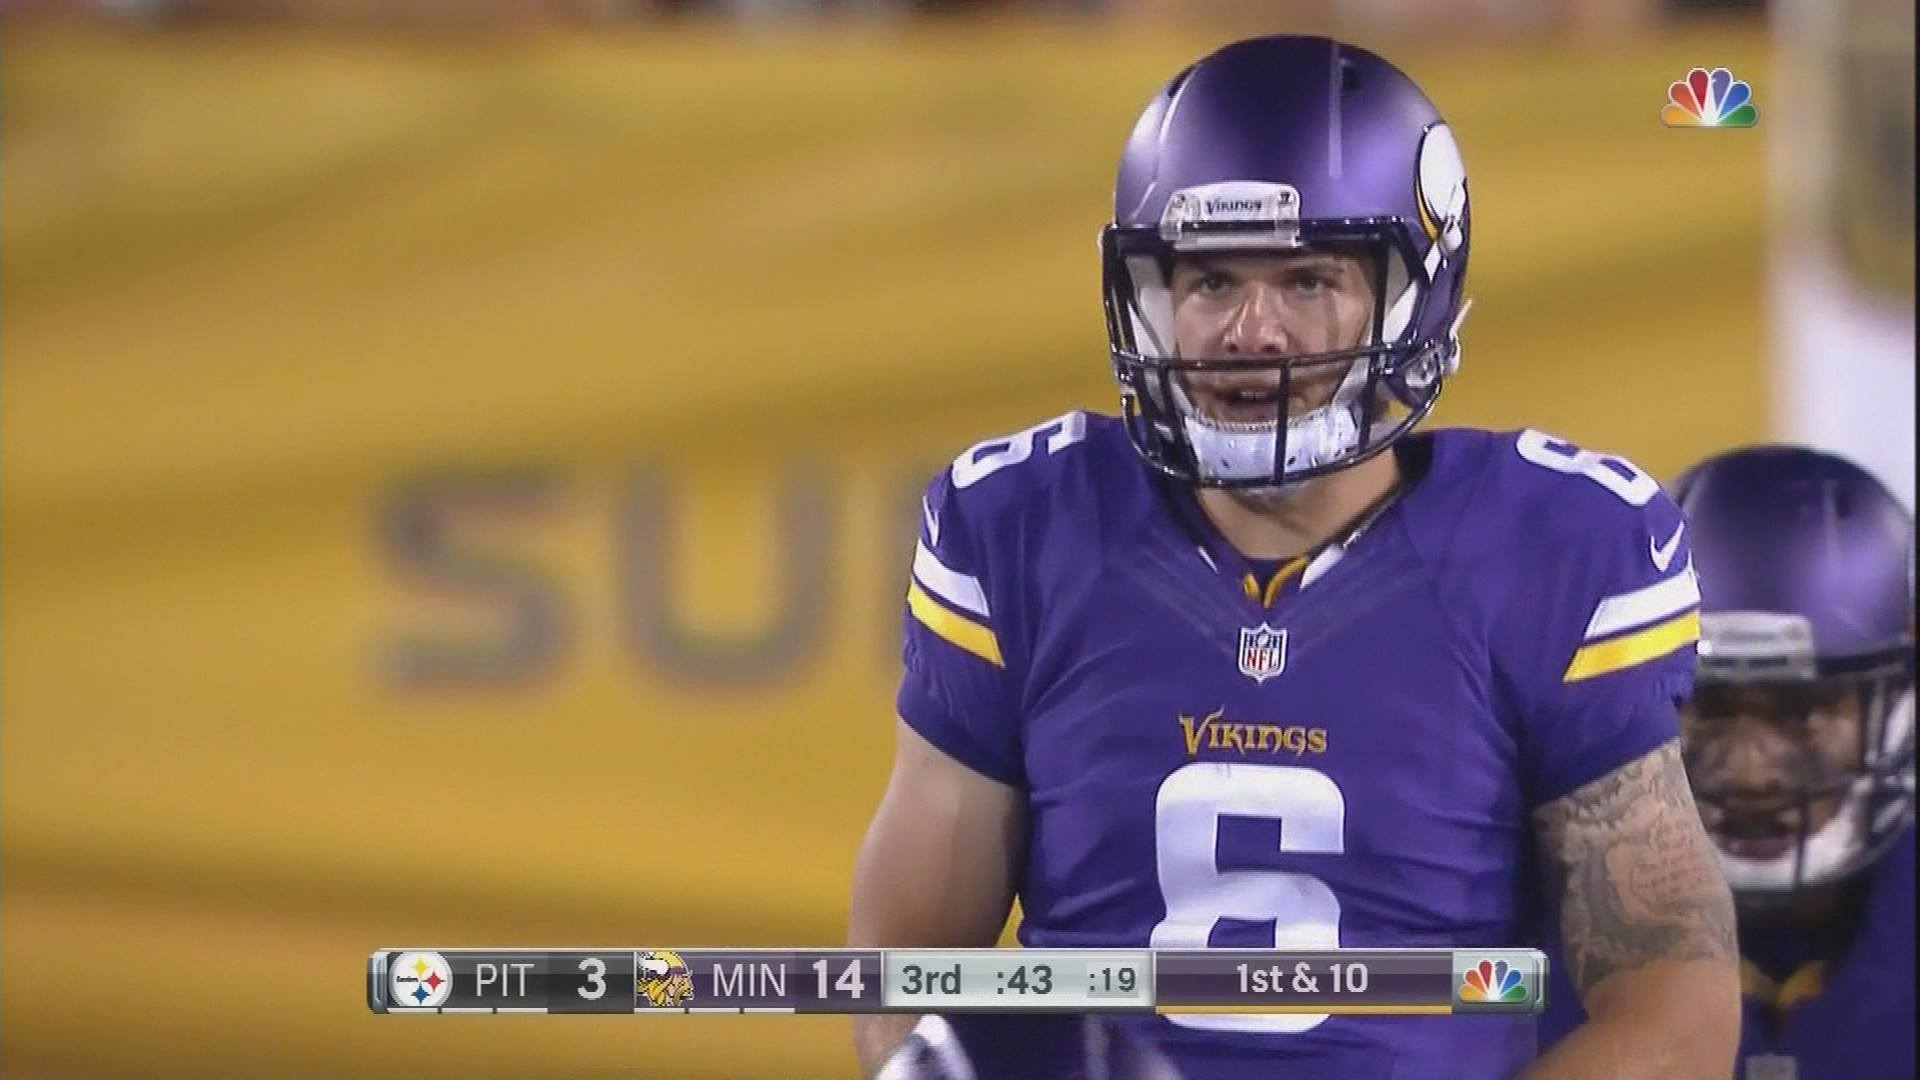 Nfl Bridgewater Injury An Opportunity For Taylor Heinicke Ultimate Recruit